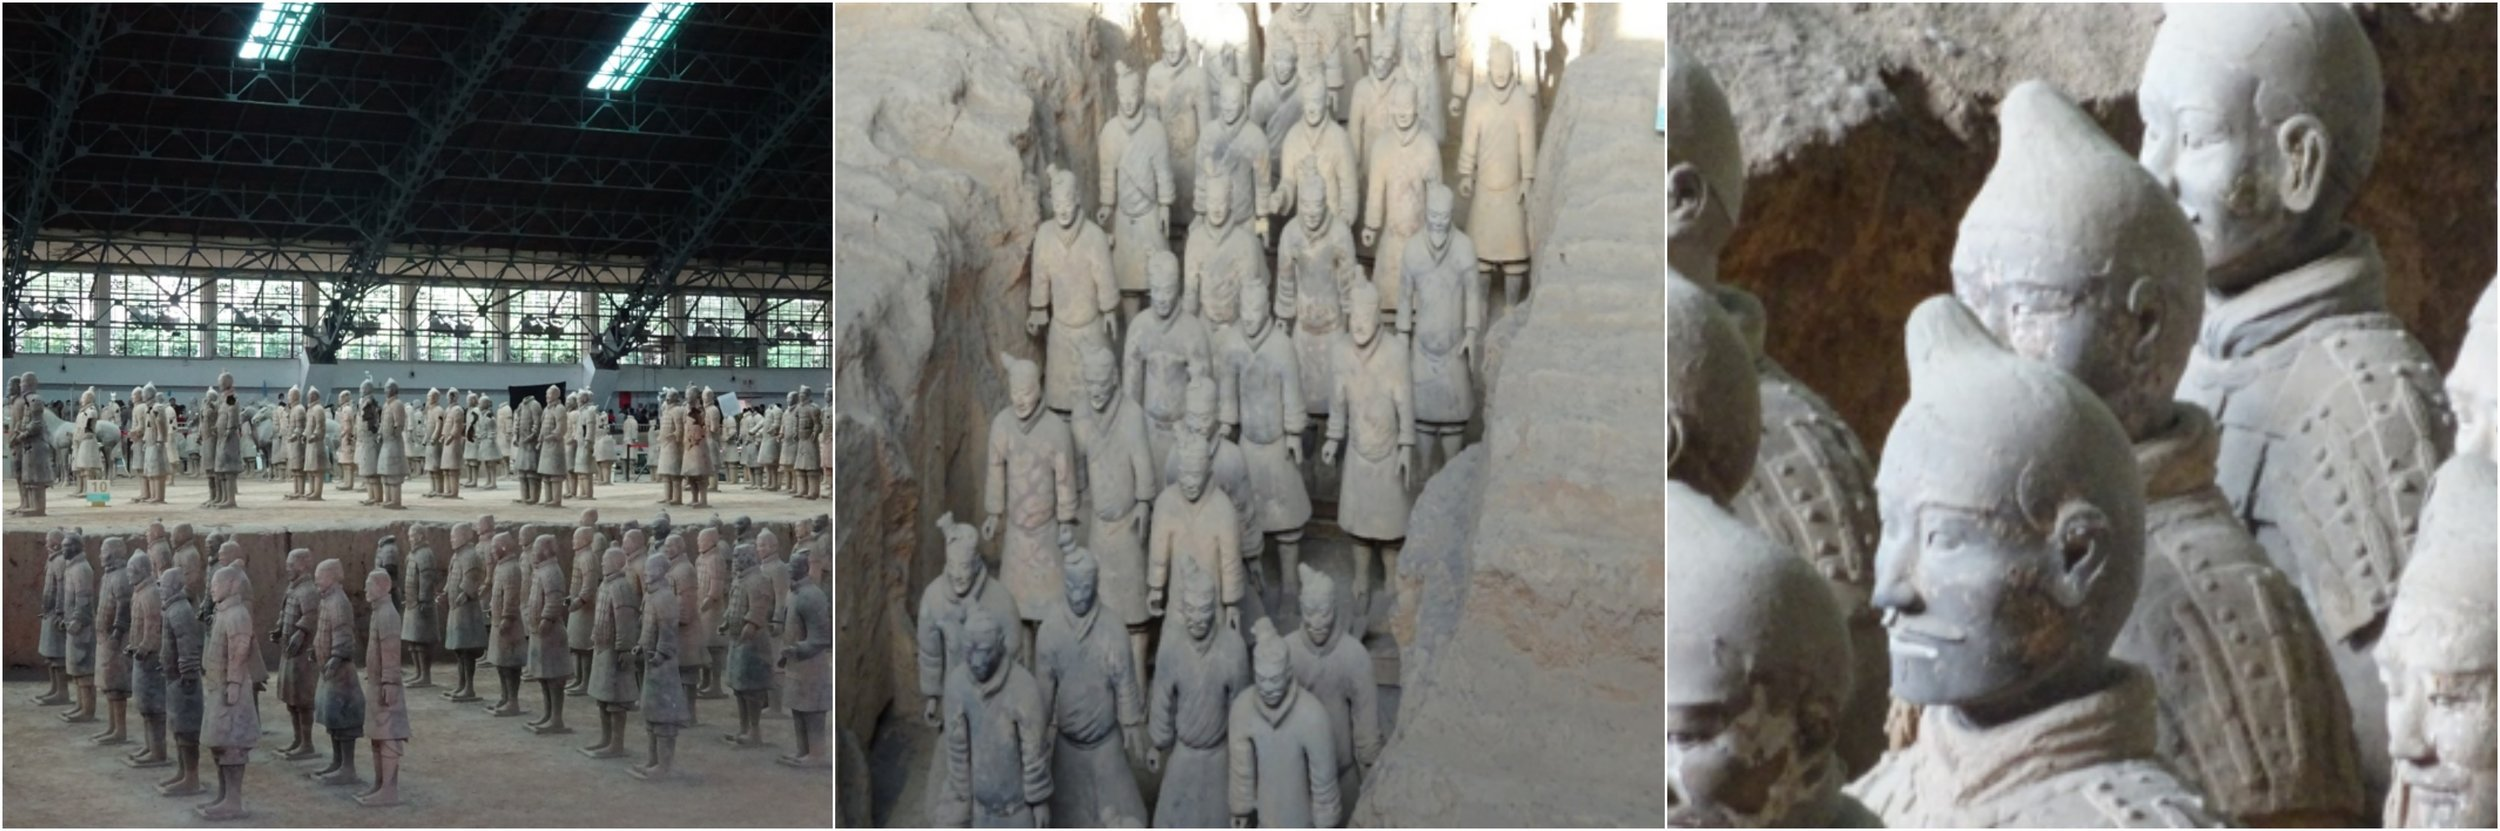 Army of Terracotta Warriors .jpg